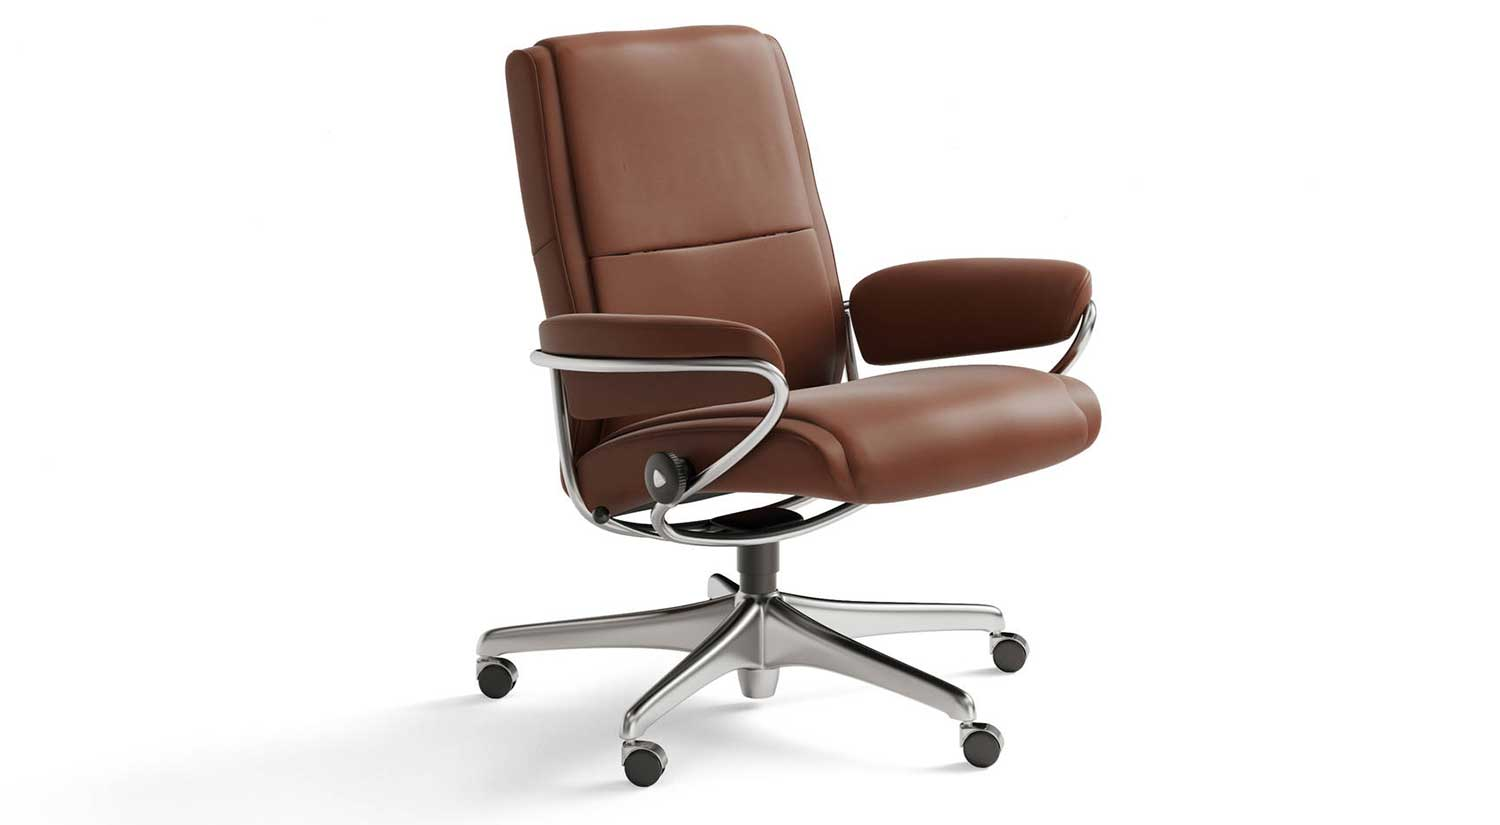 Paris Lowback Office Chair